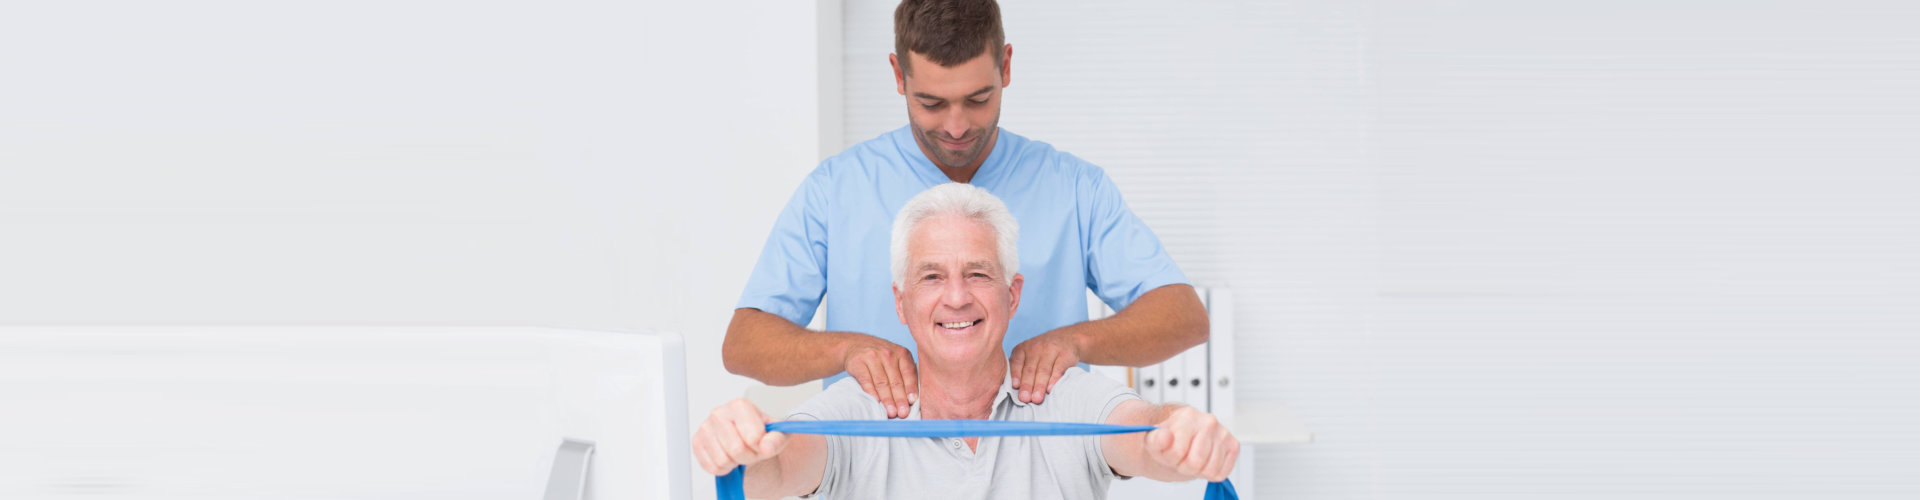 therapist massaging a senior man